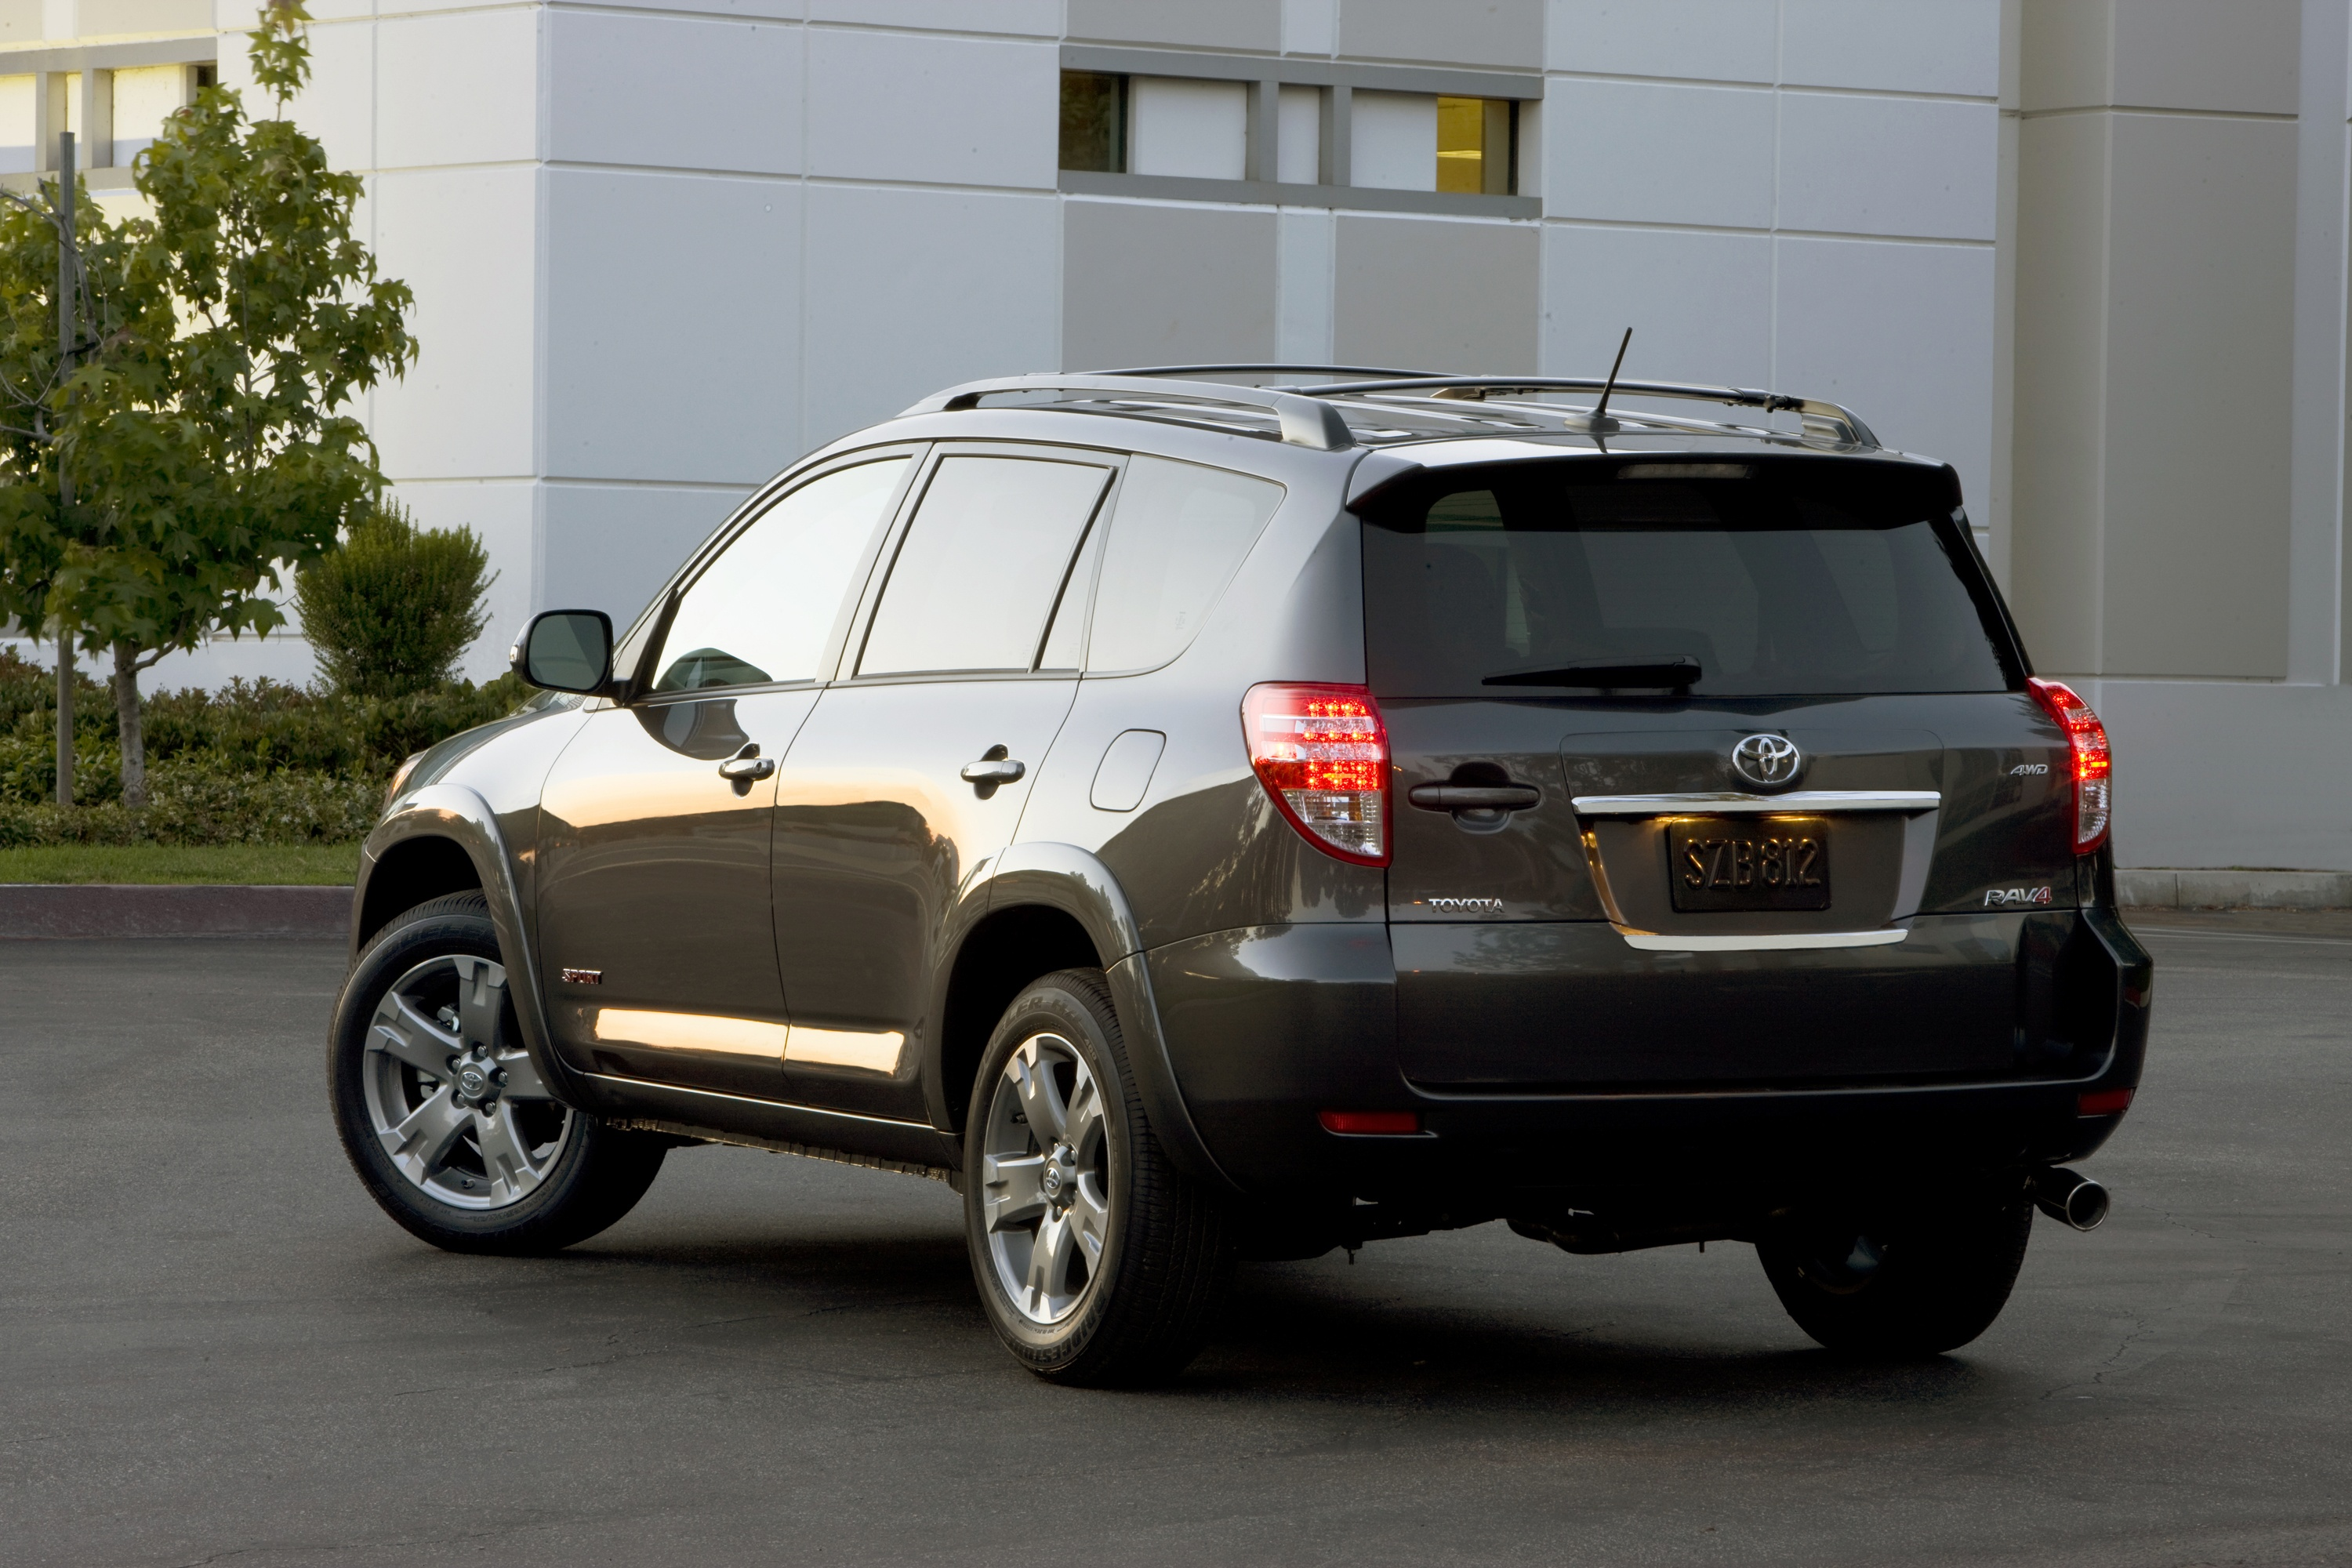 2009 toyota rav4 sport 4x4 v6 review autosavant autosavant. Black Bedroom Furniture Sets. Home Design Ideas